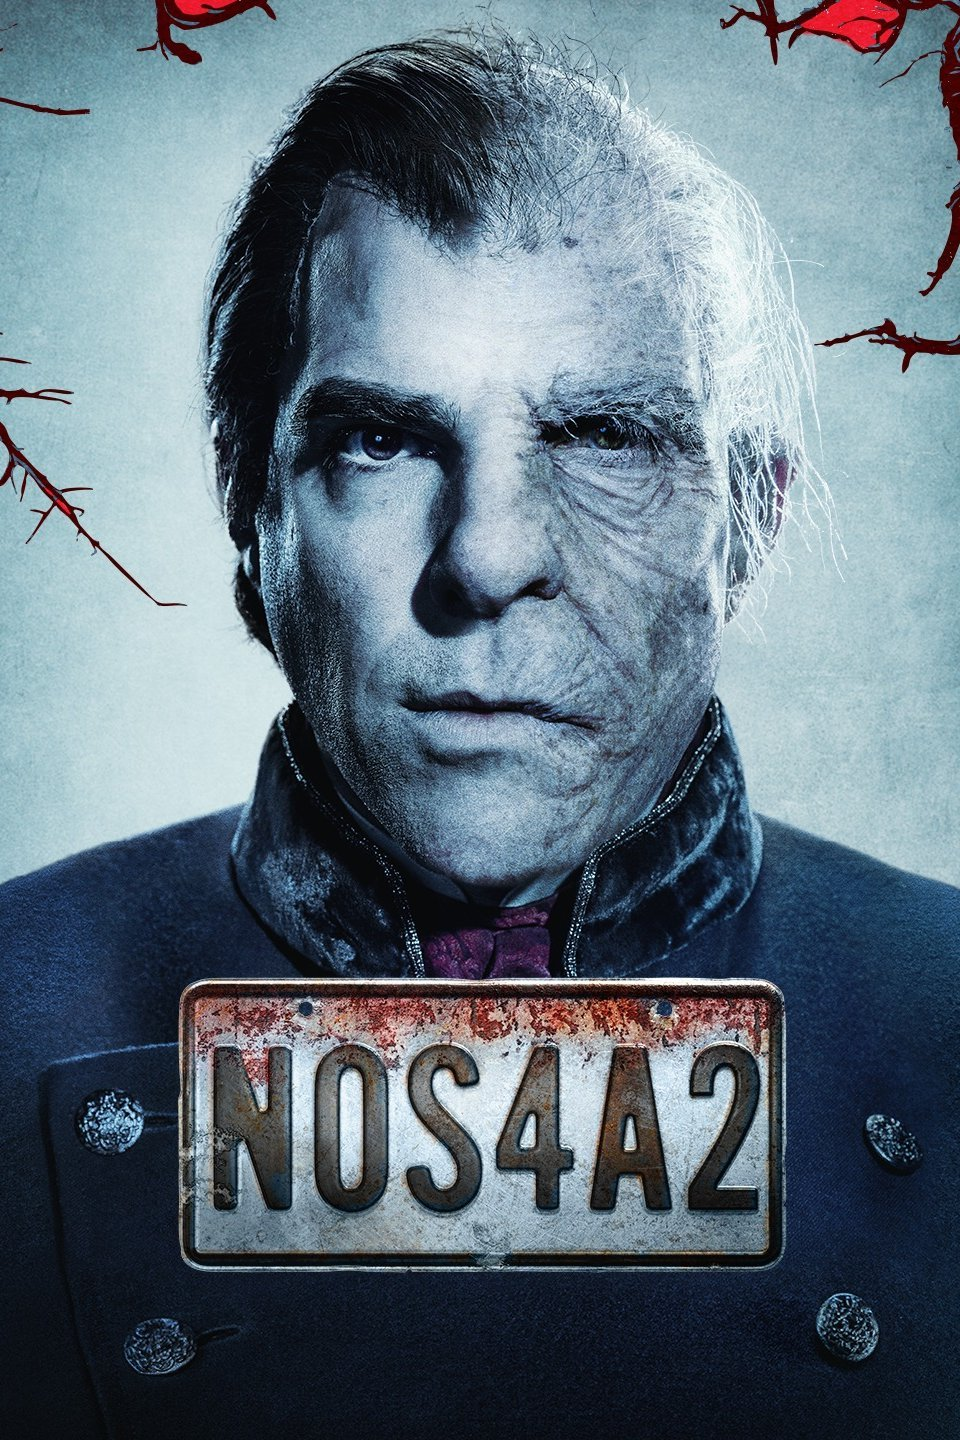 NOS4A2 (2019) S01 Hindi Complete 1.4GB HDRip 480p x264 ESubs Free Download